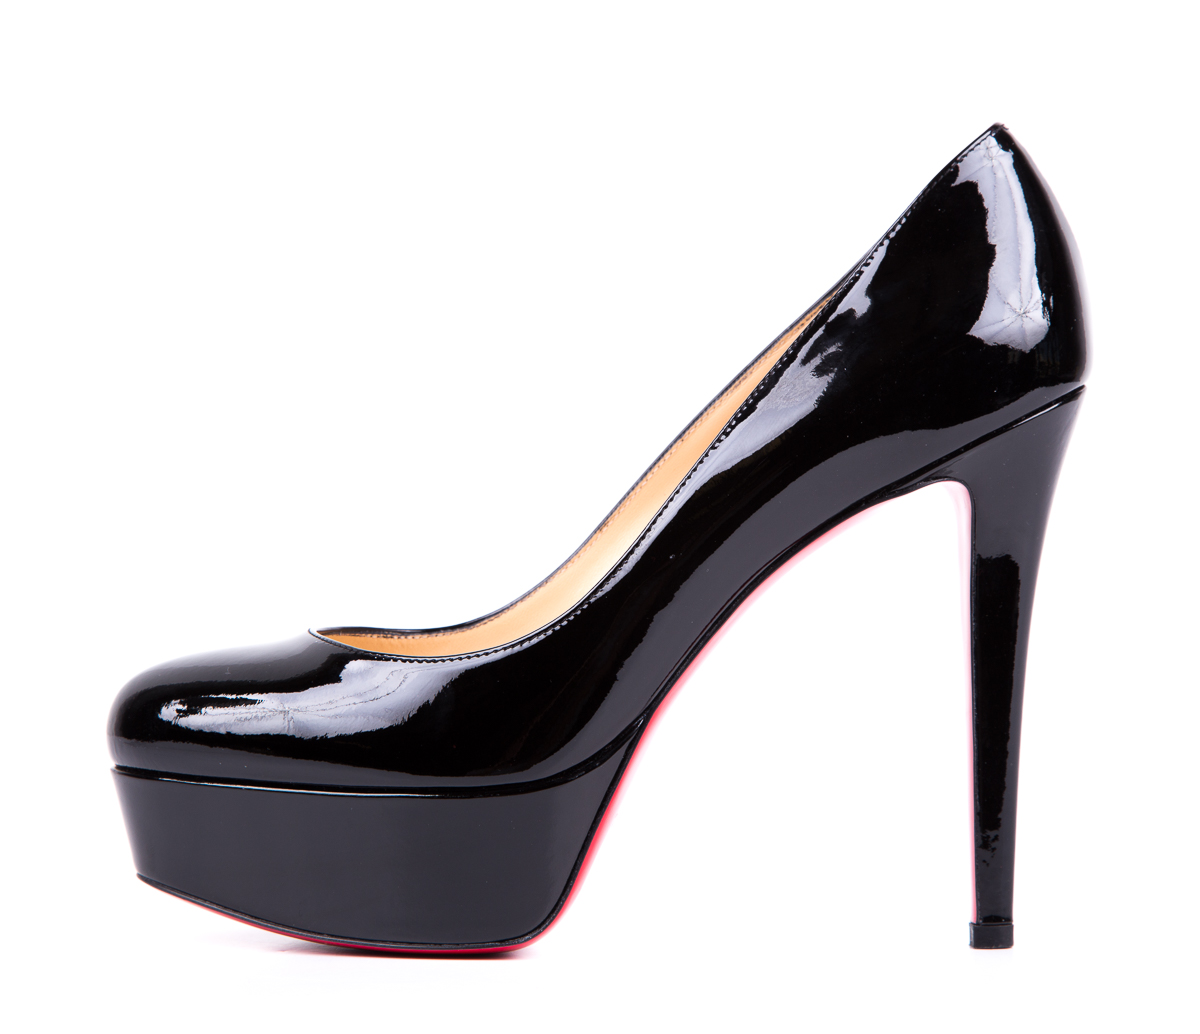 top christian louboutin replicas - Christian Louboutin Black Patent Leather Bianca Pumps SZ 38 | To ...